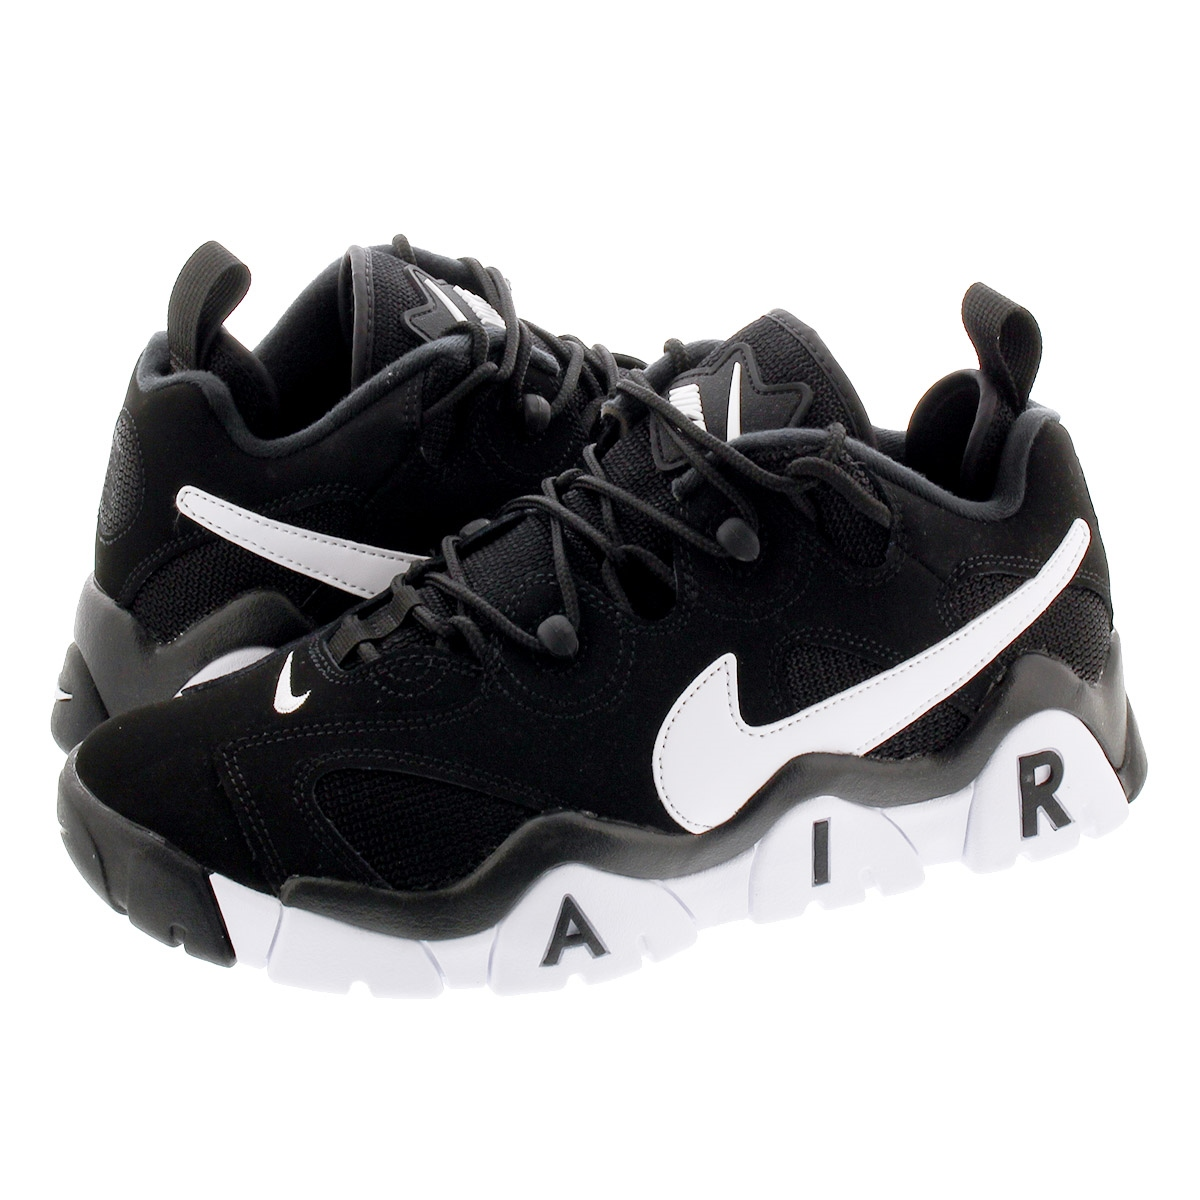 NIKE AIR BARRAGE LOW ナイキ エア バラージ ロー BLACK/WHITE cd7510-001